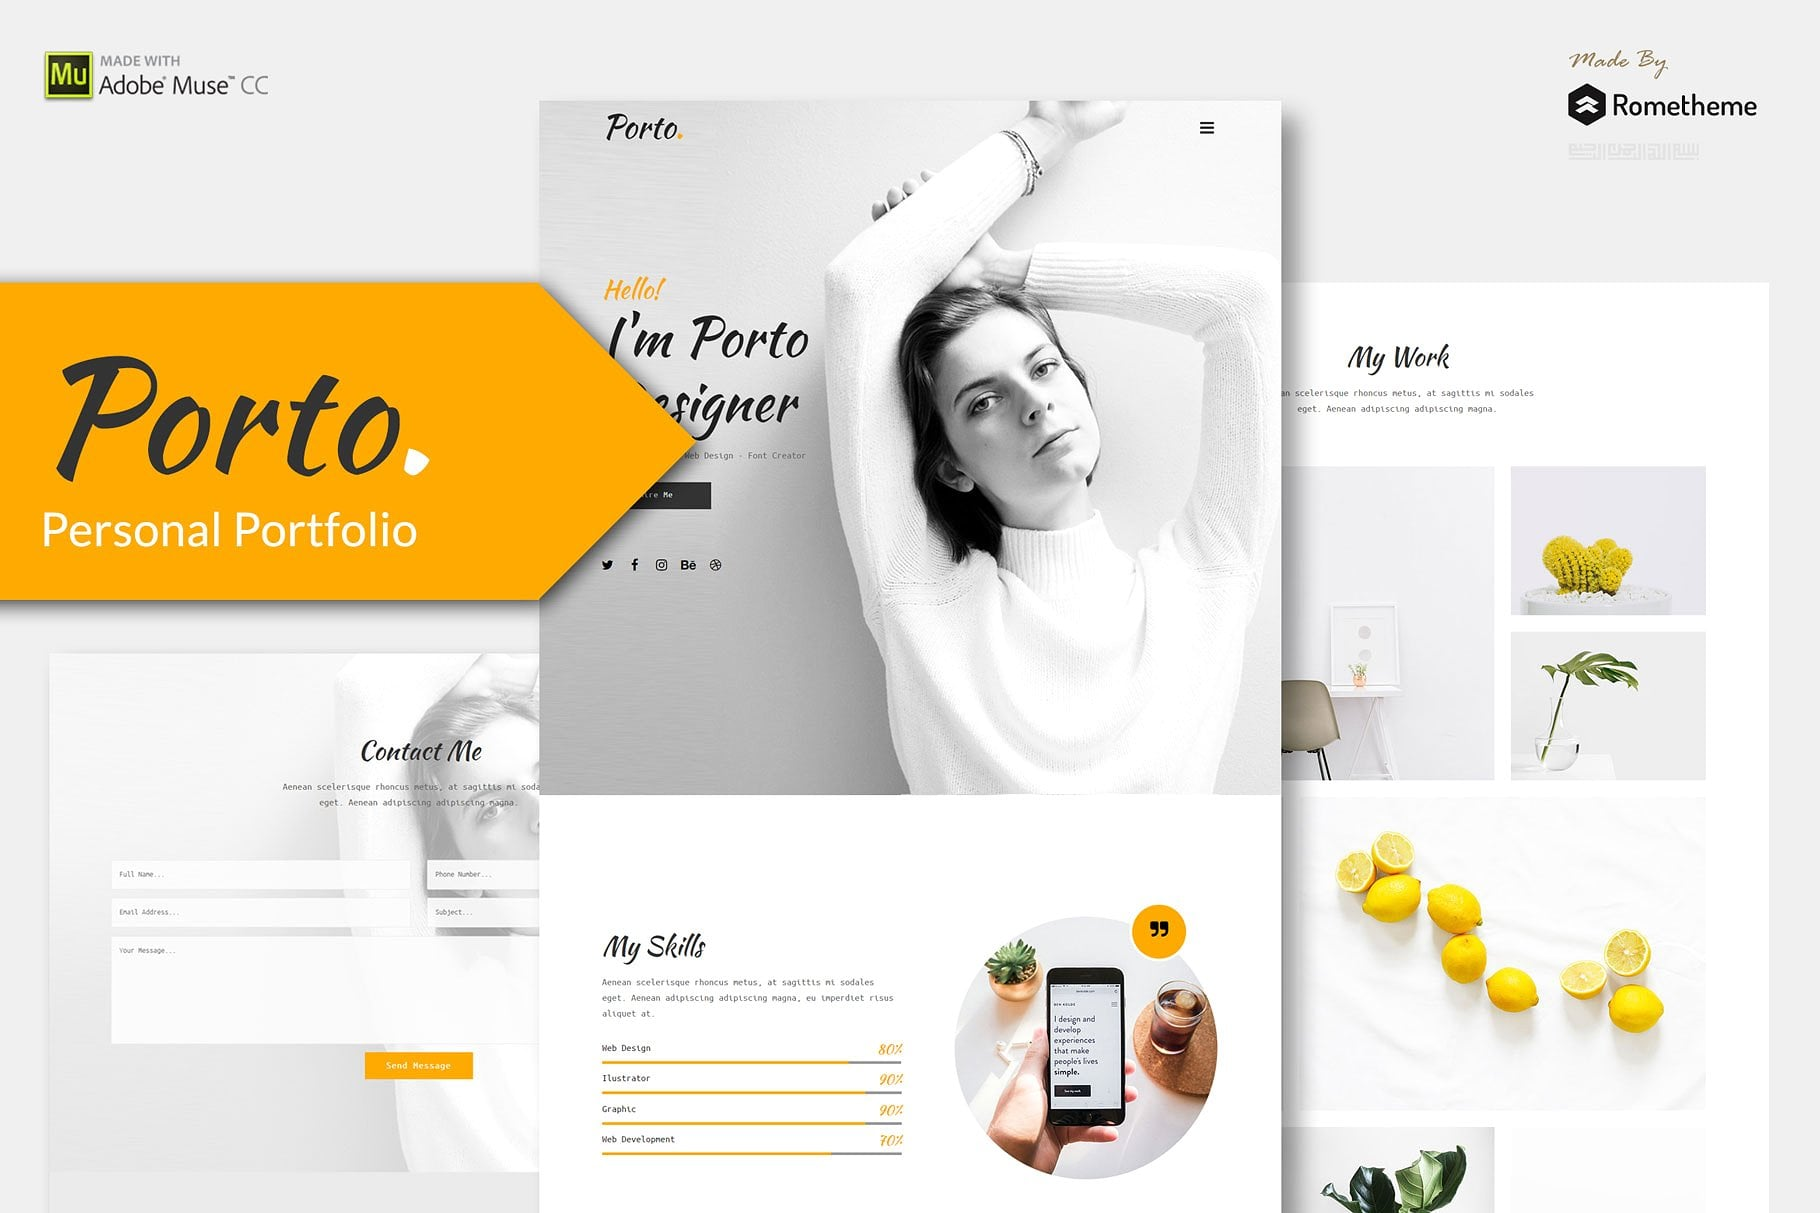 10 in 1 - Adobe Muse Template Bundle - Only $10 - preview 1 1